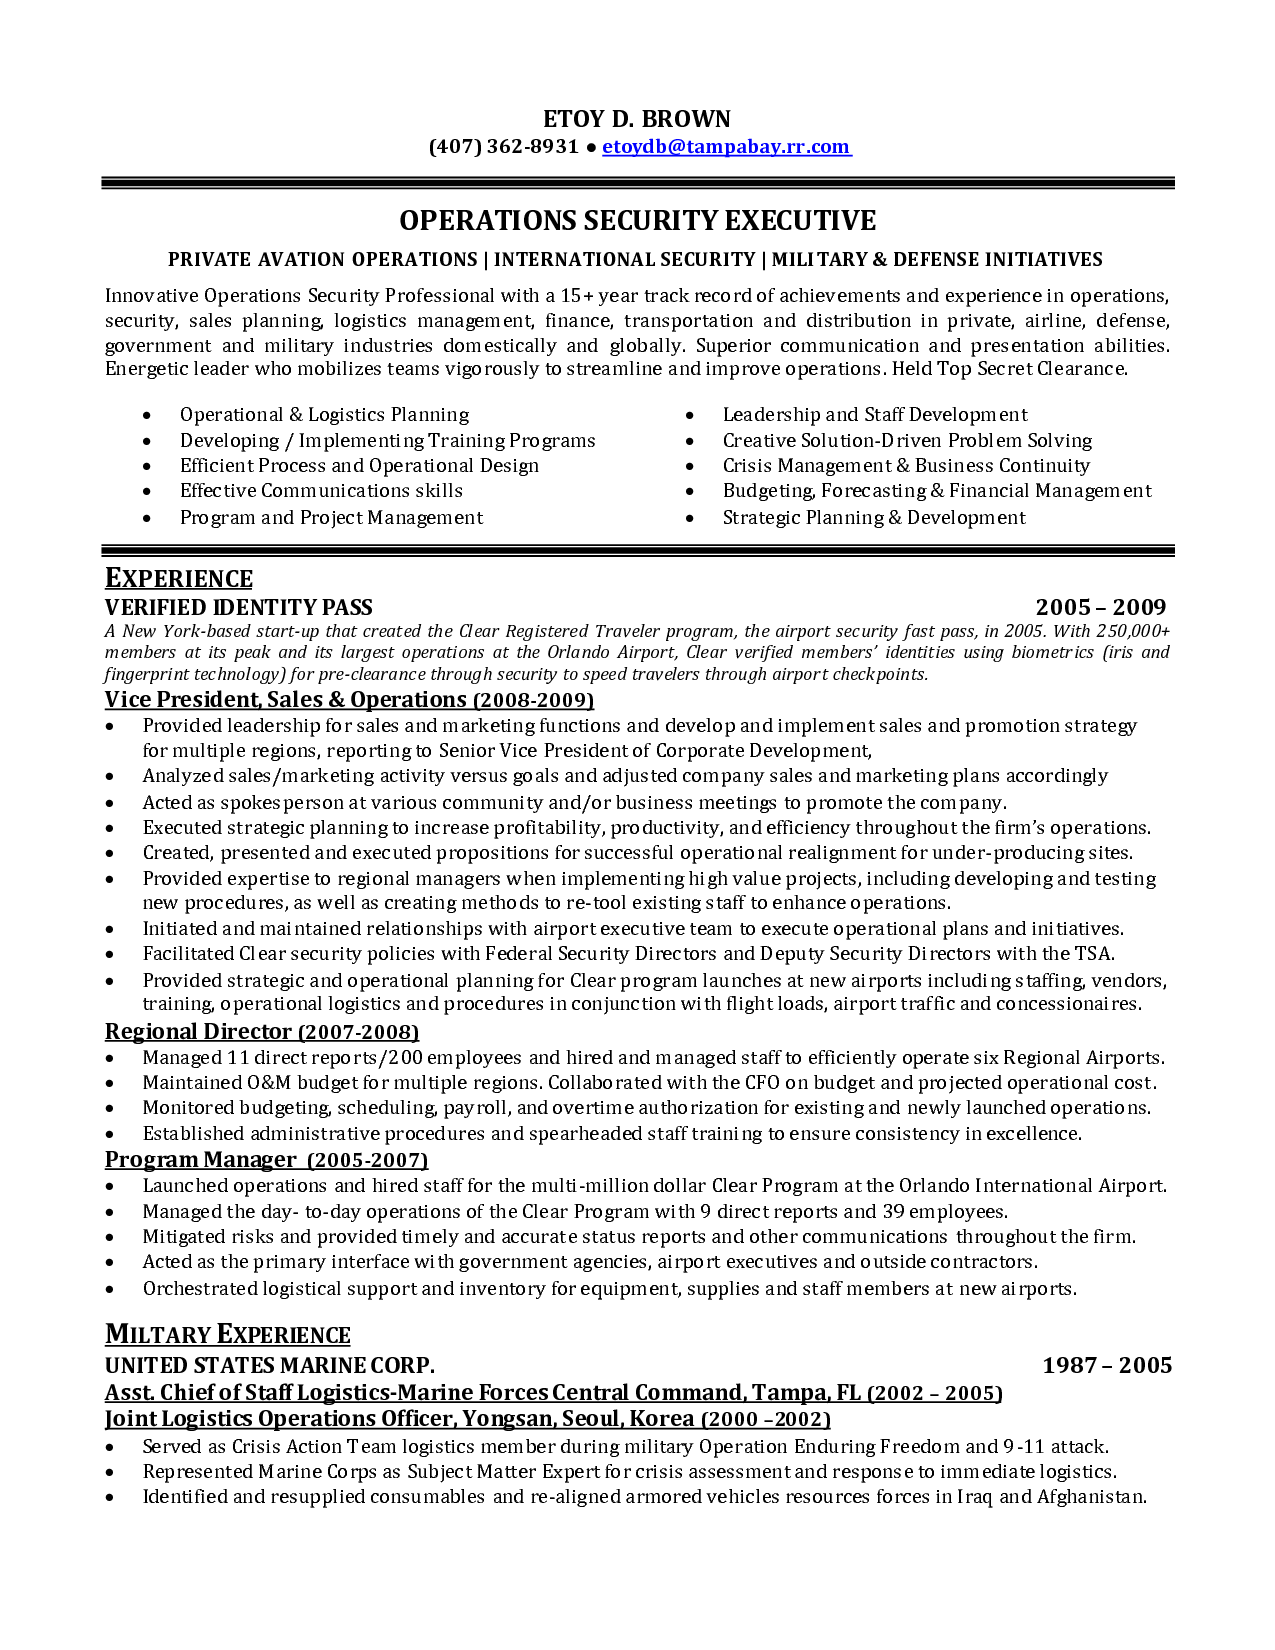 Military Contractor Sample Resume Istance Dog Trainer Cover